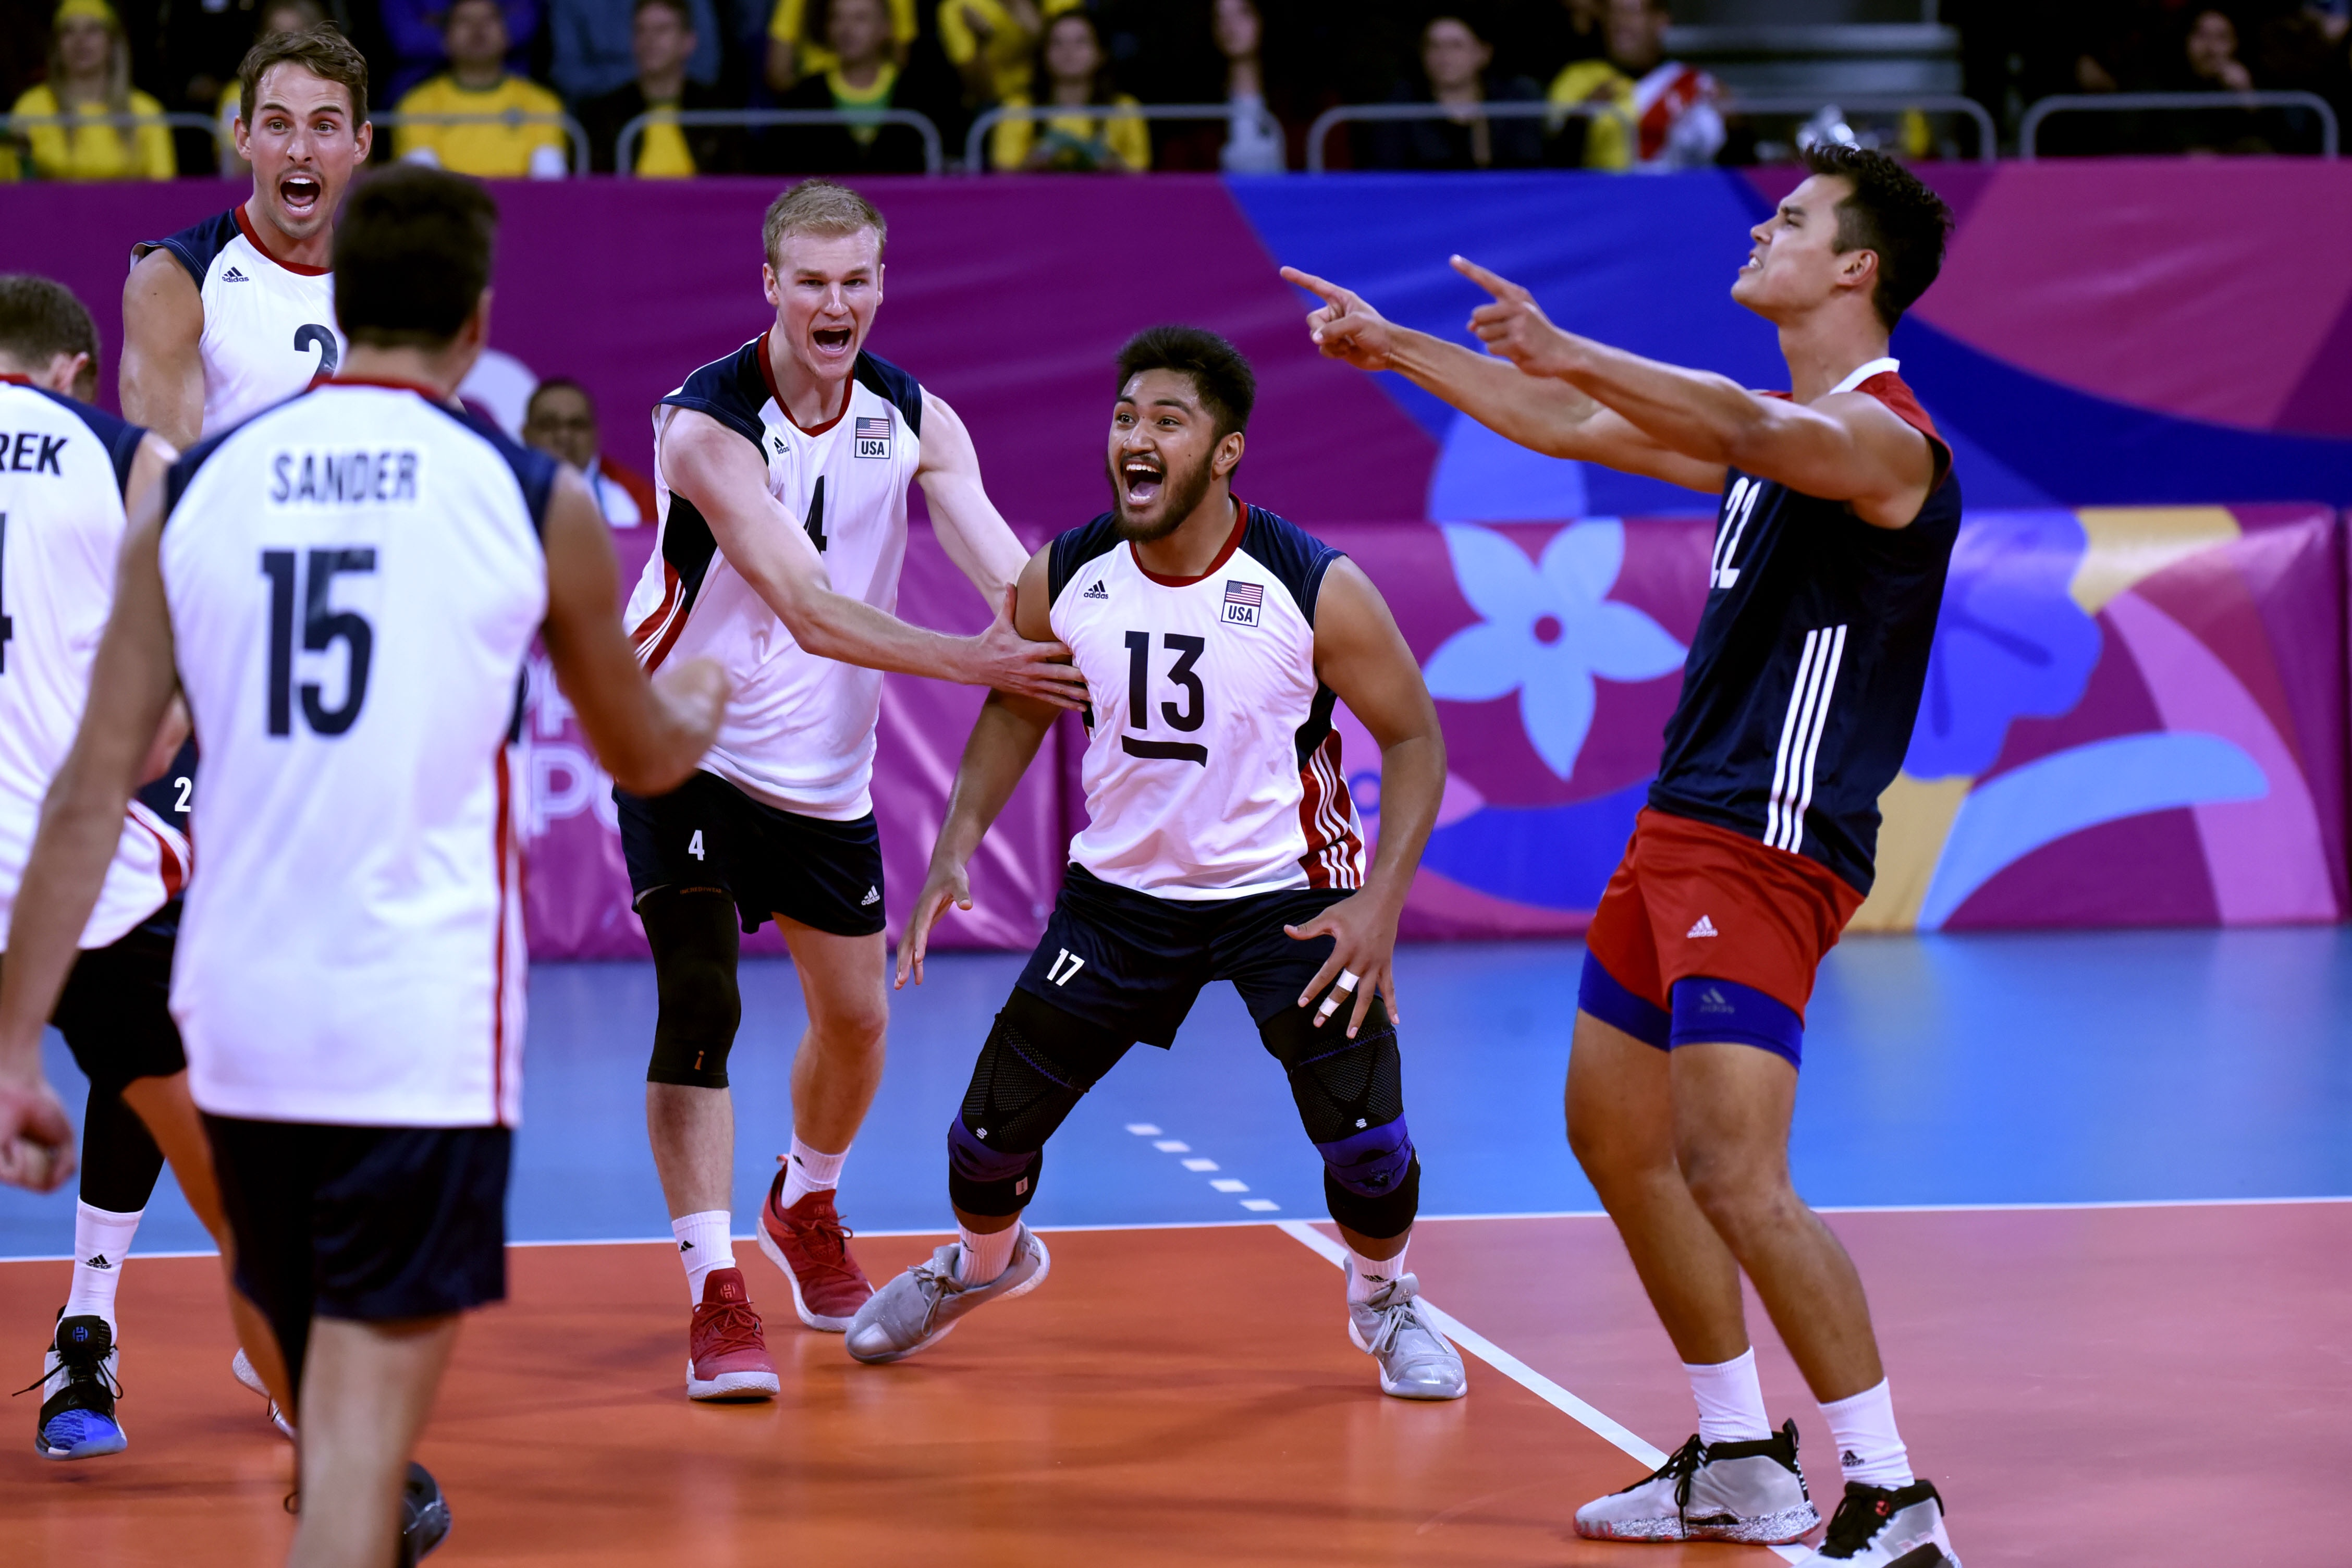 Pan American Games Men S Volleyball Matches To Follow Today Off The Block